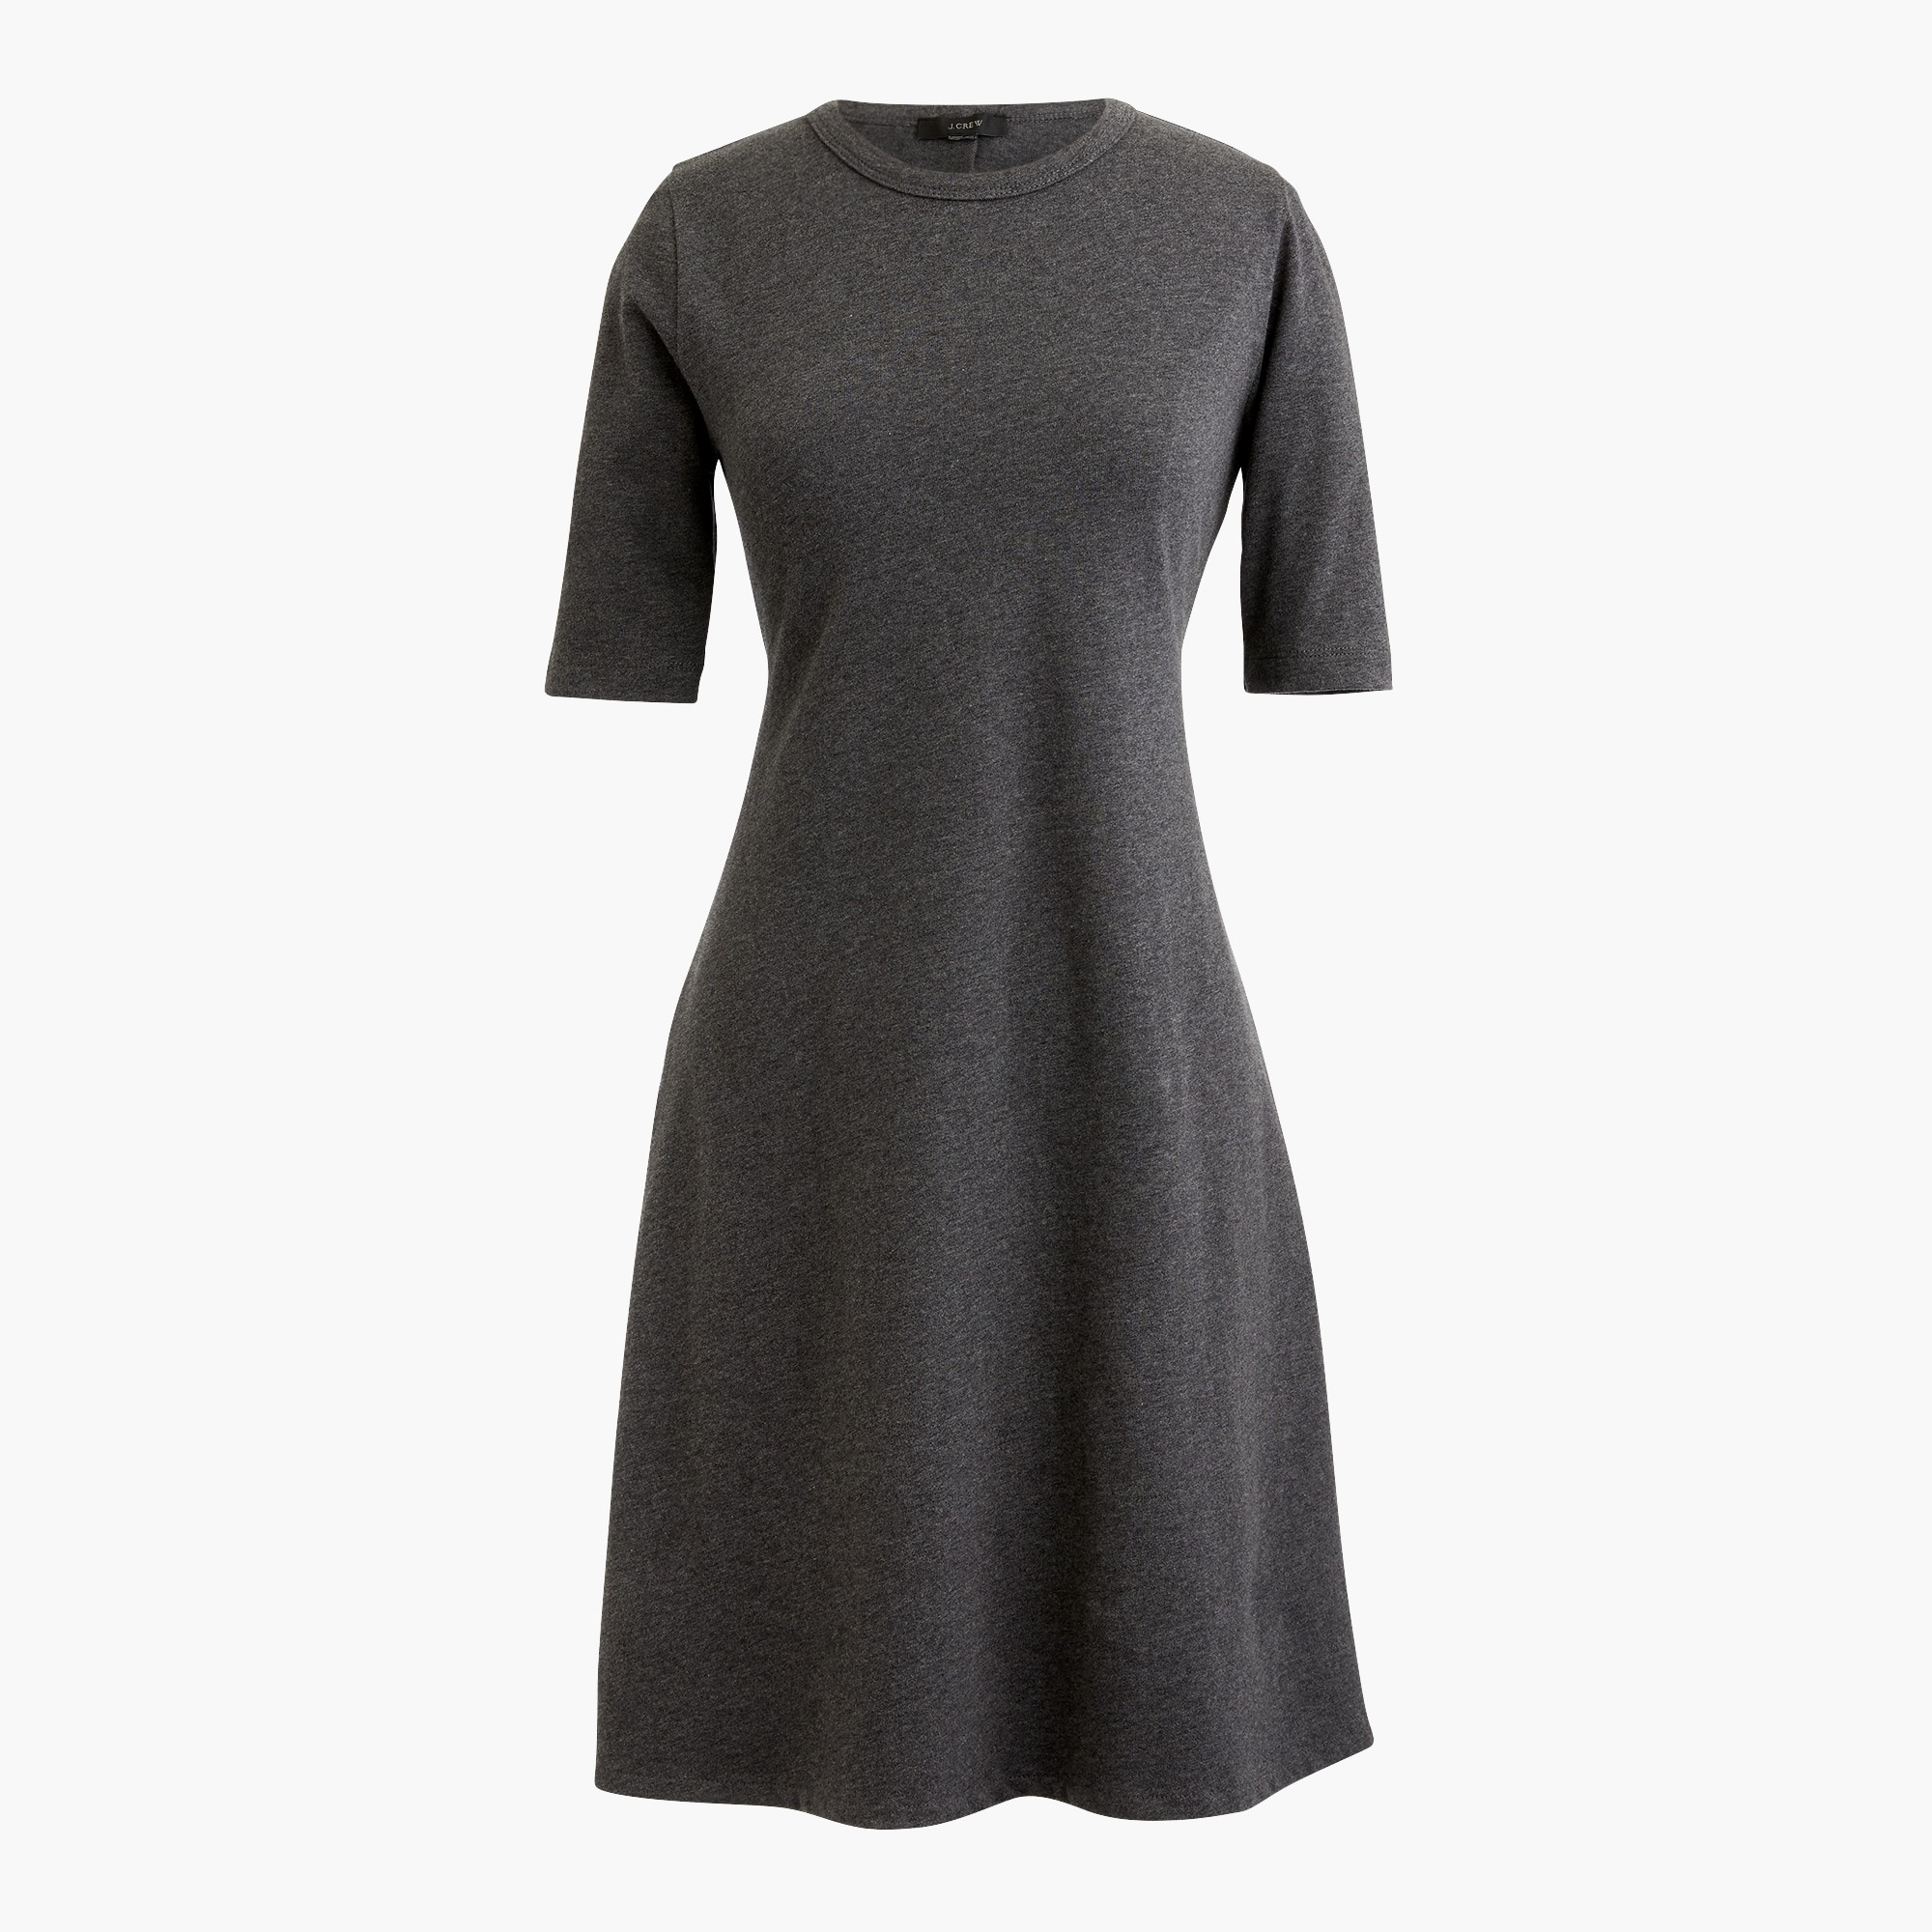 Image 1 for Petite short-sleeve knit dress